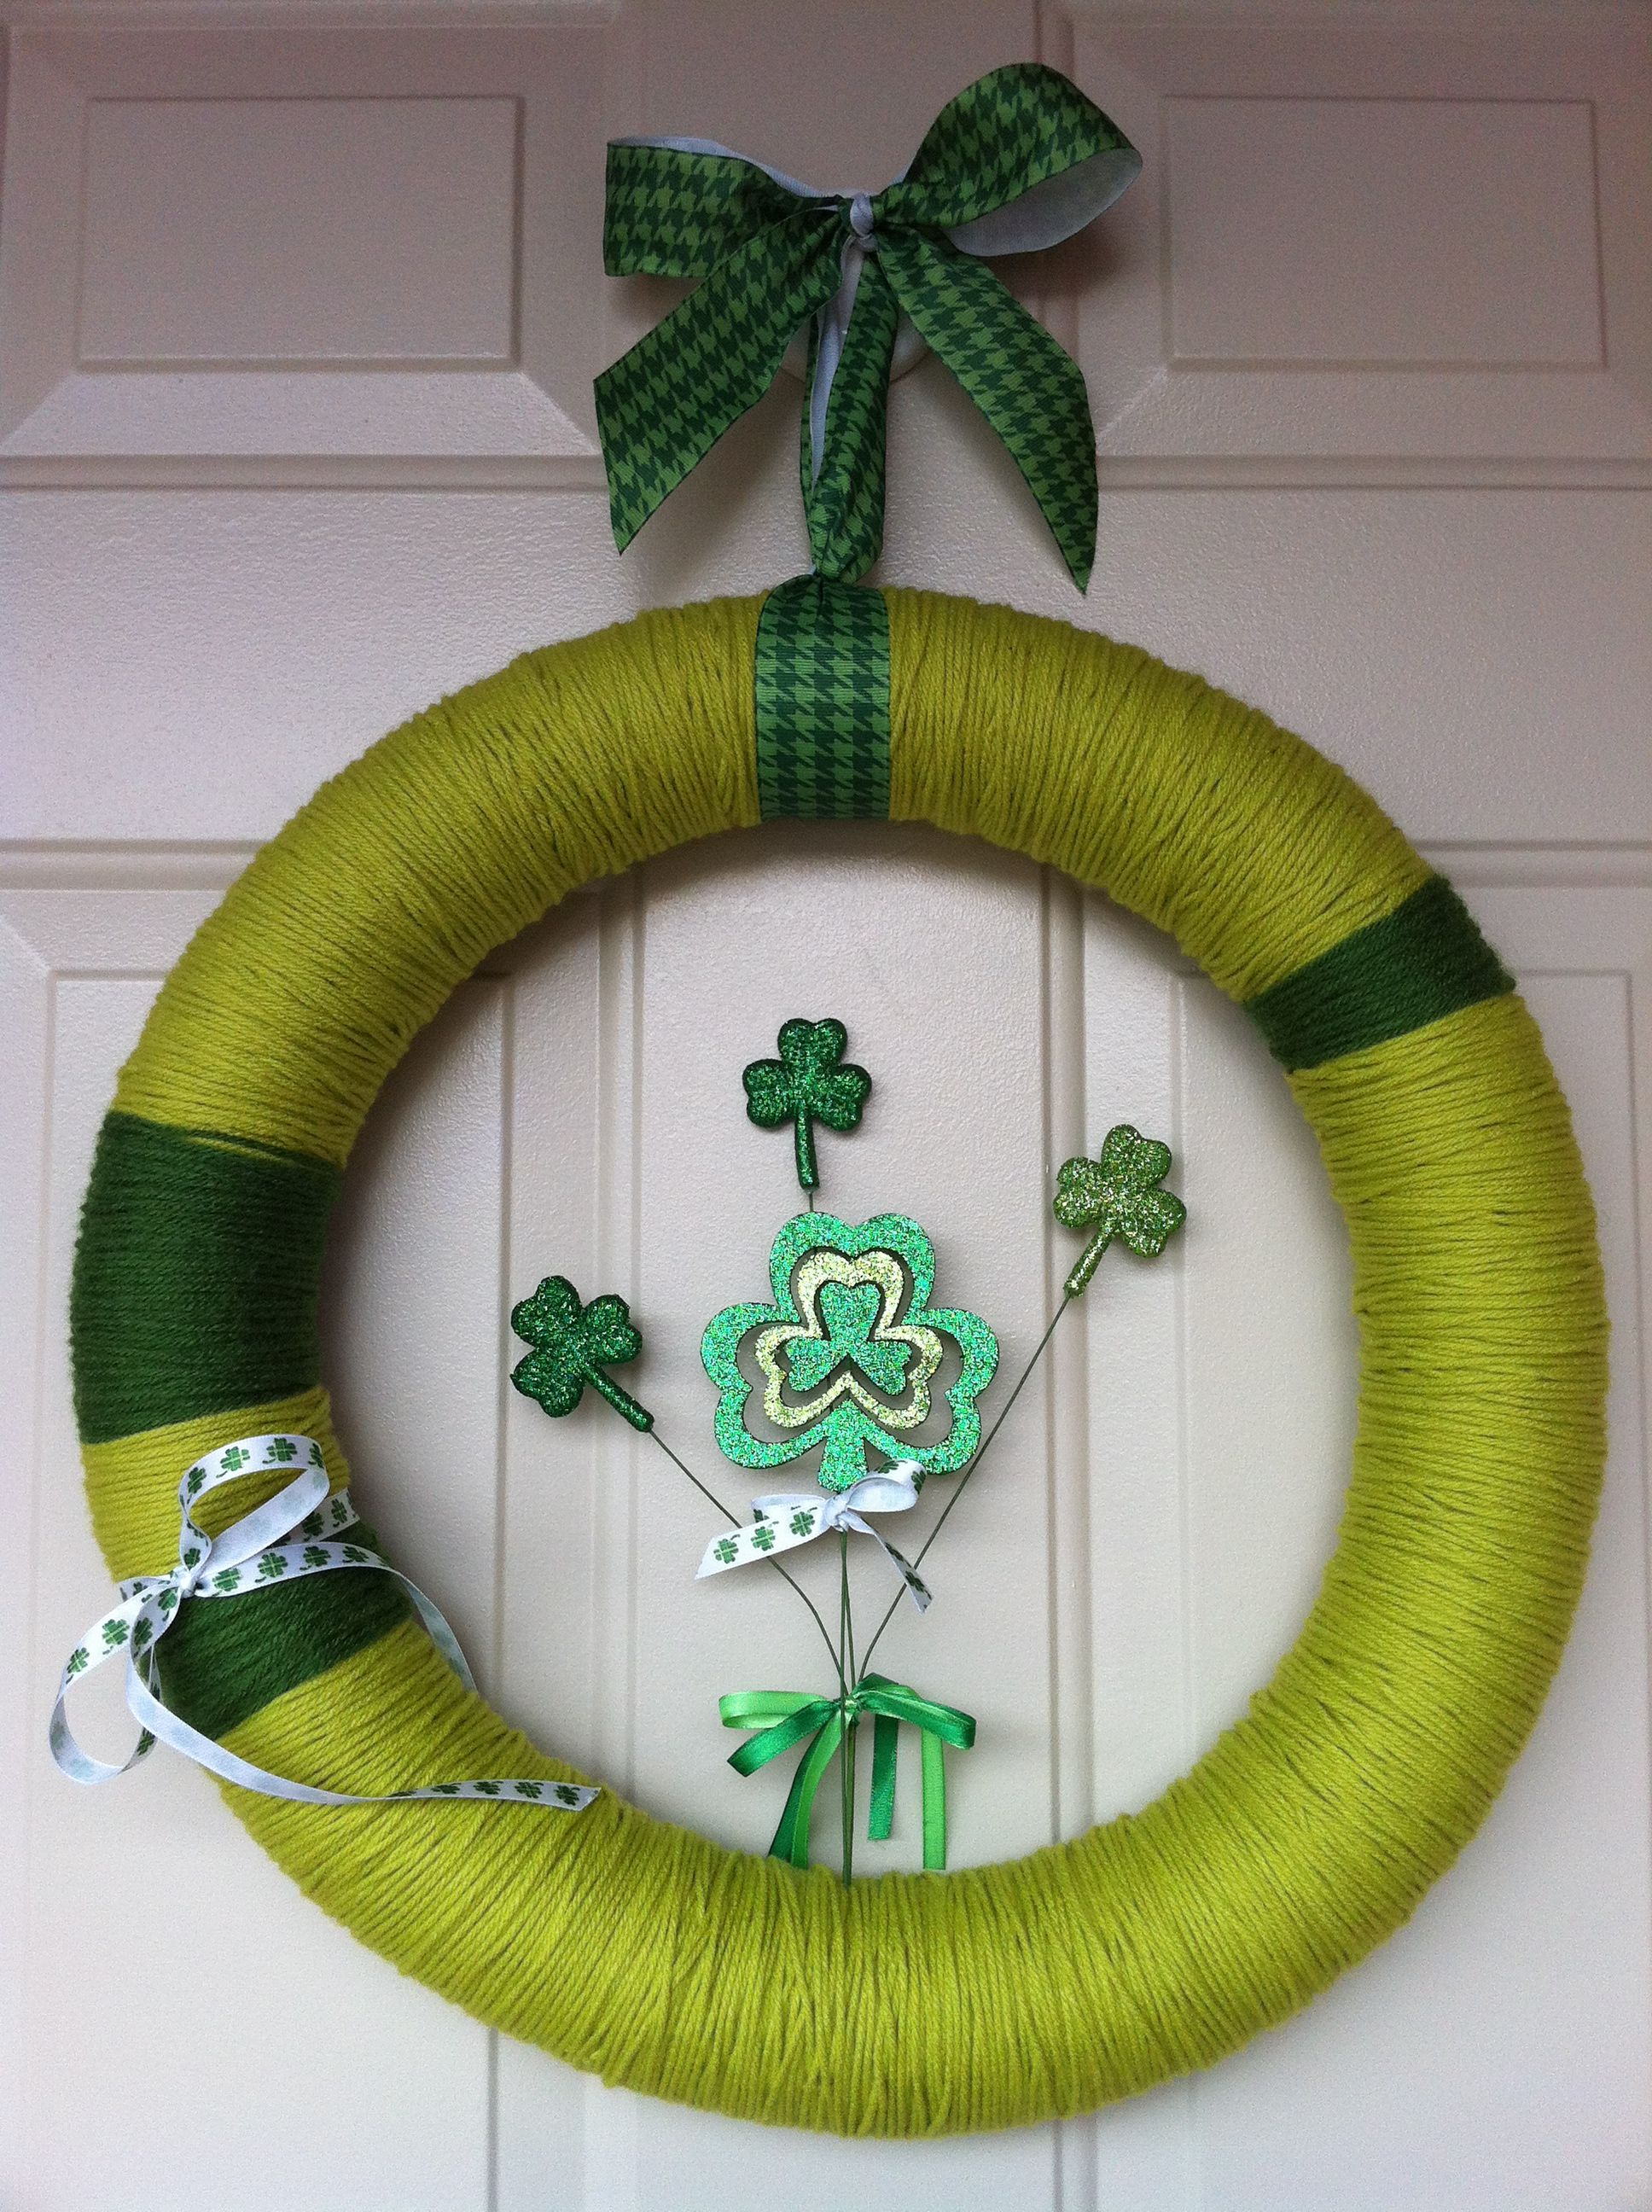 My newest festive wreath that I made to celebrate my Irish Heritage (and for St. Patrick's Day)...made from a pool noodle, yarn, ribbon and St. Patty's Day deco! #poolnoodlewreath